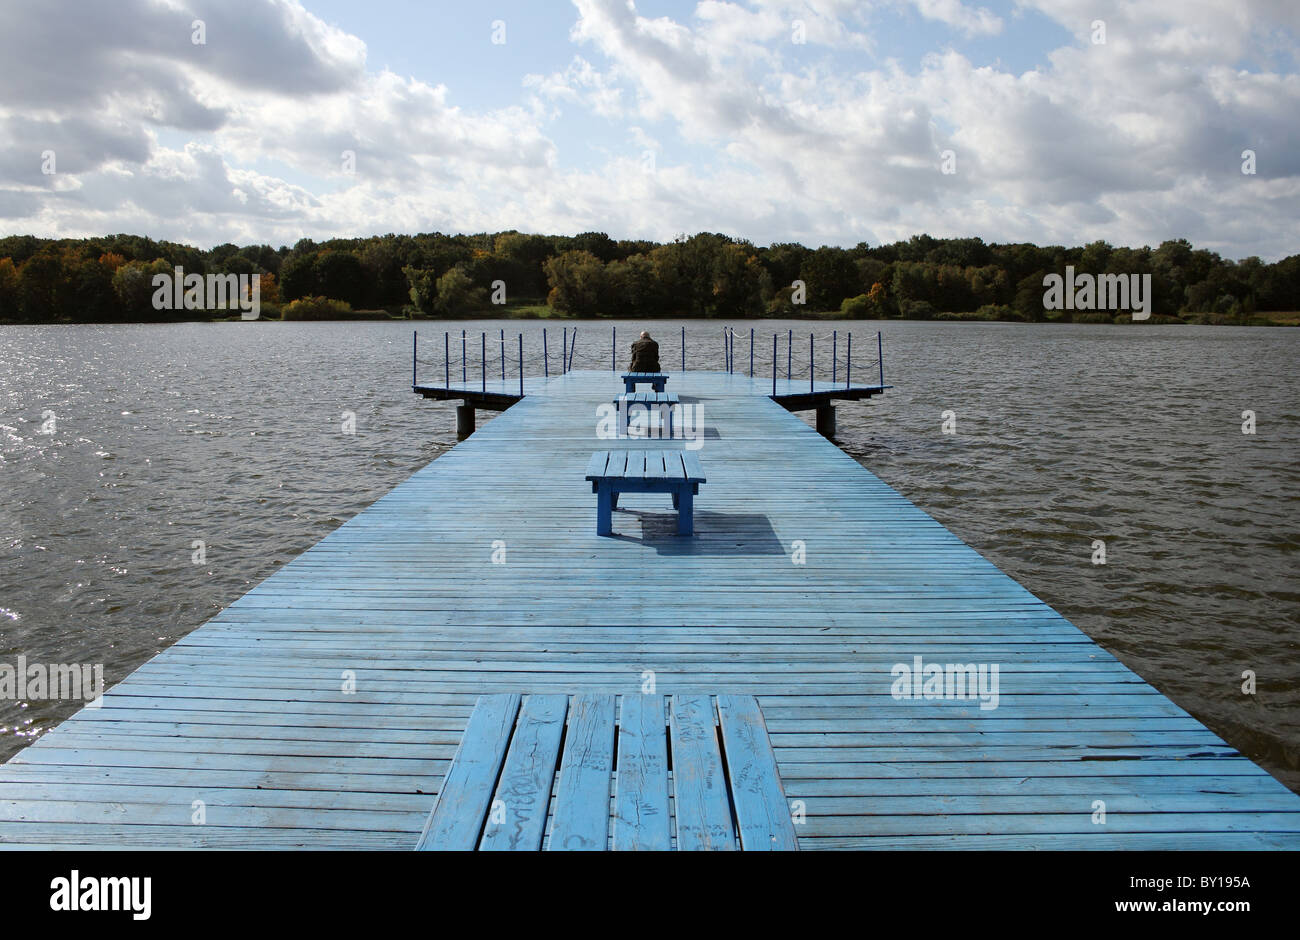 A recreational area on a lake in the city of Poznan, Poland - Stock Image